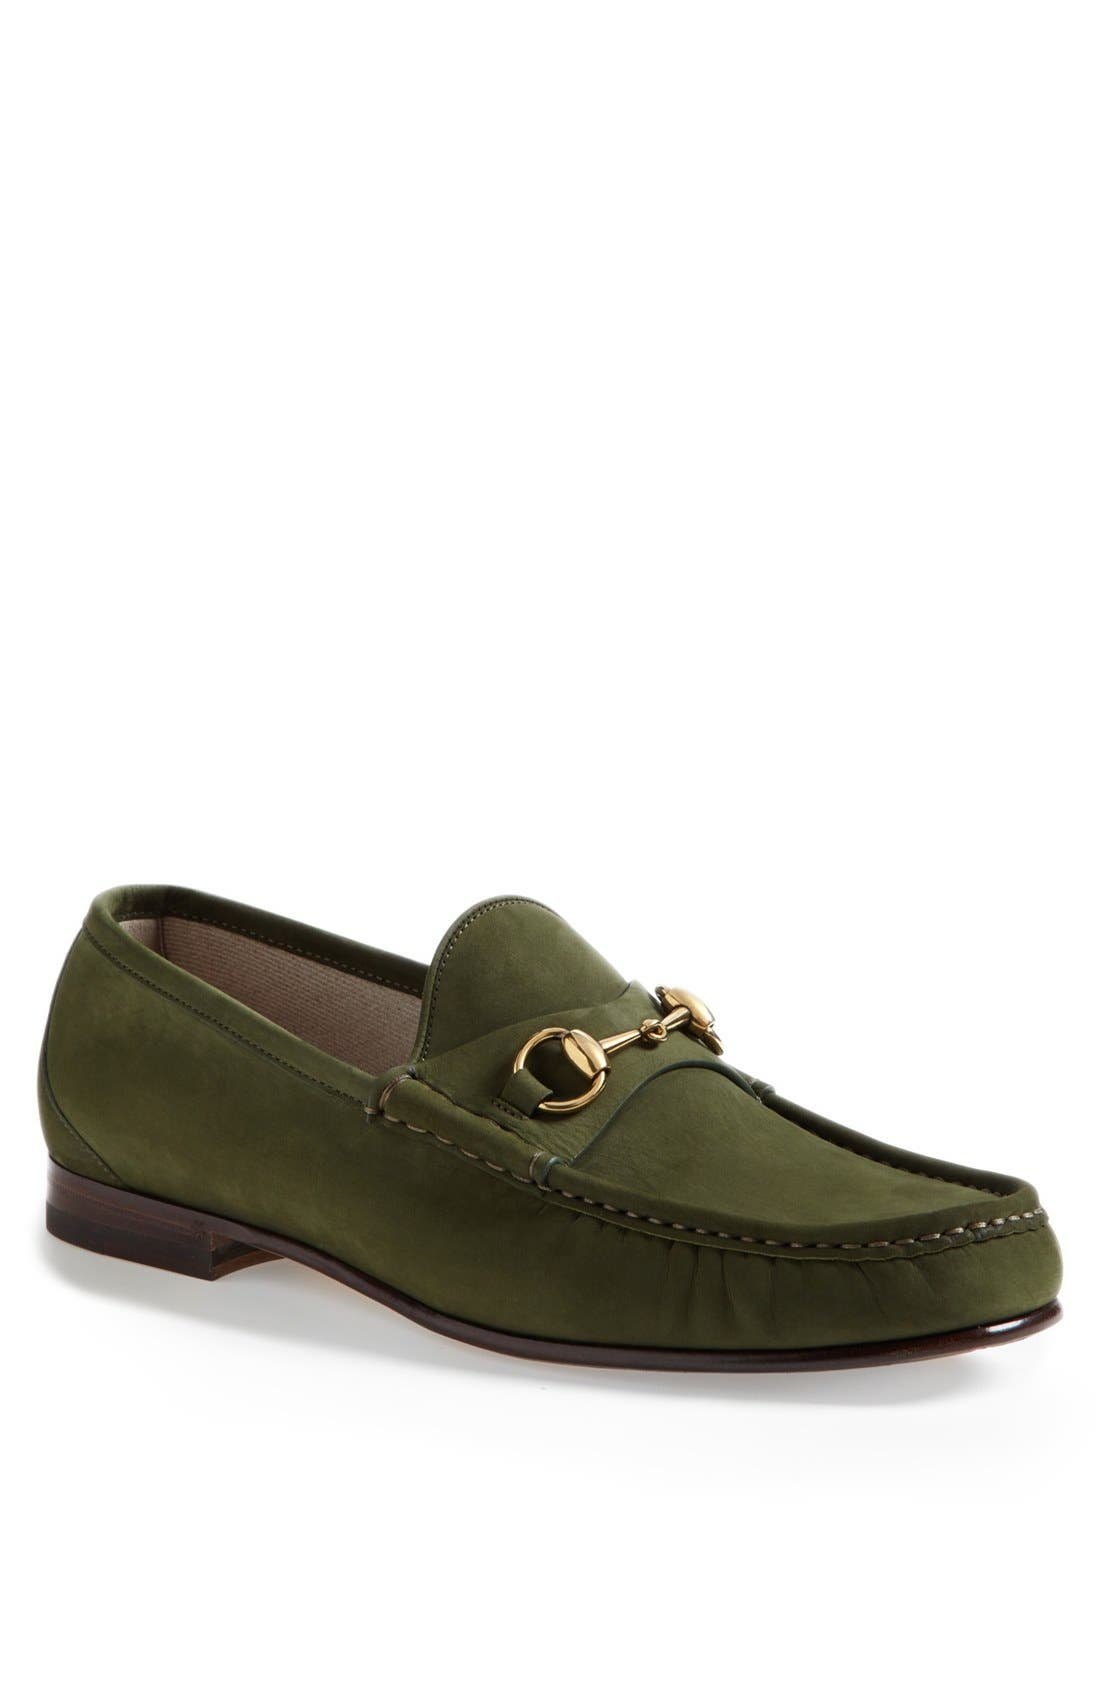 Main Image - Gucci 'Roos' Bit Loafer